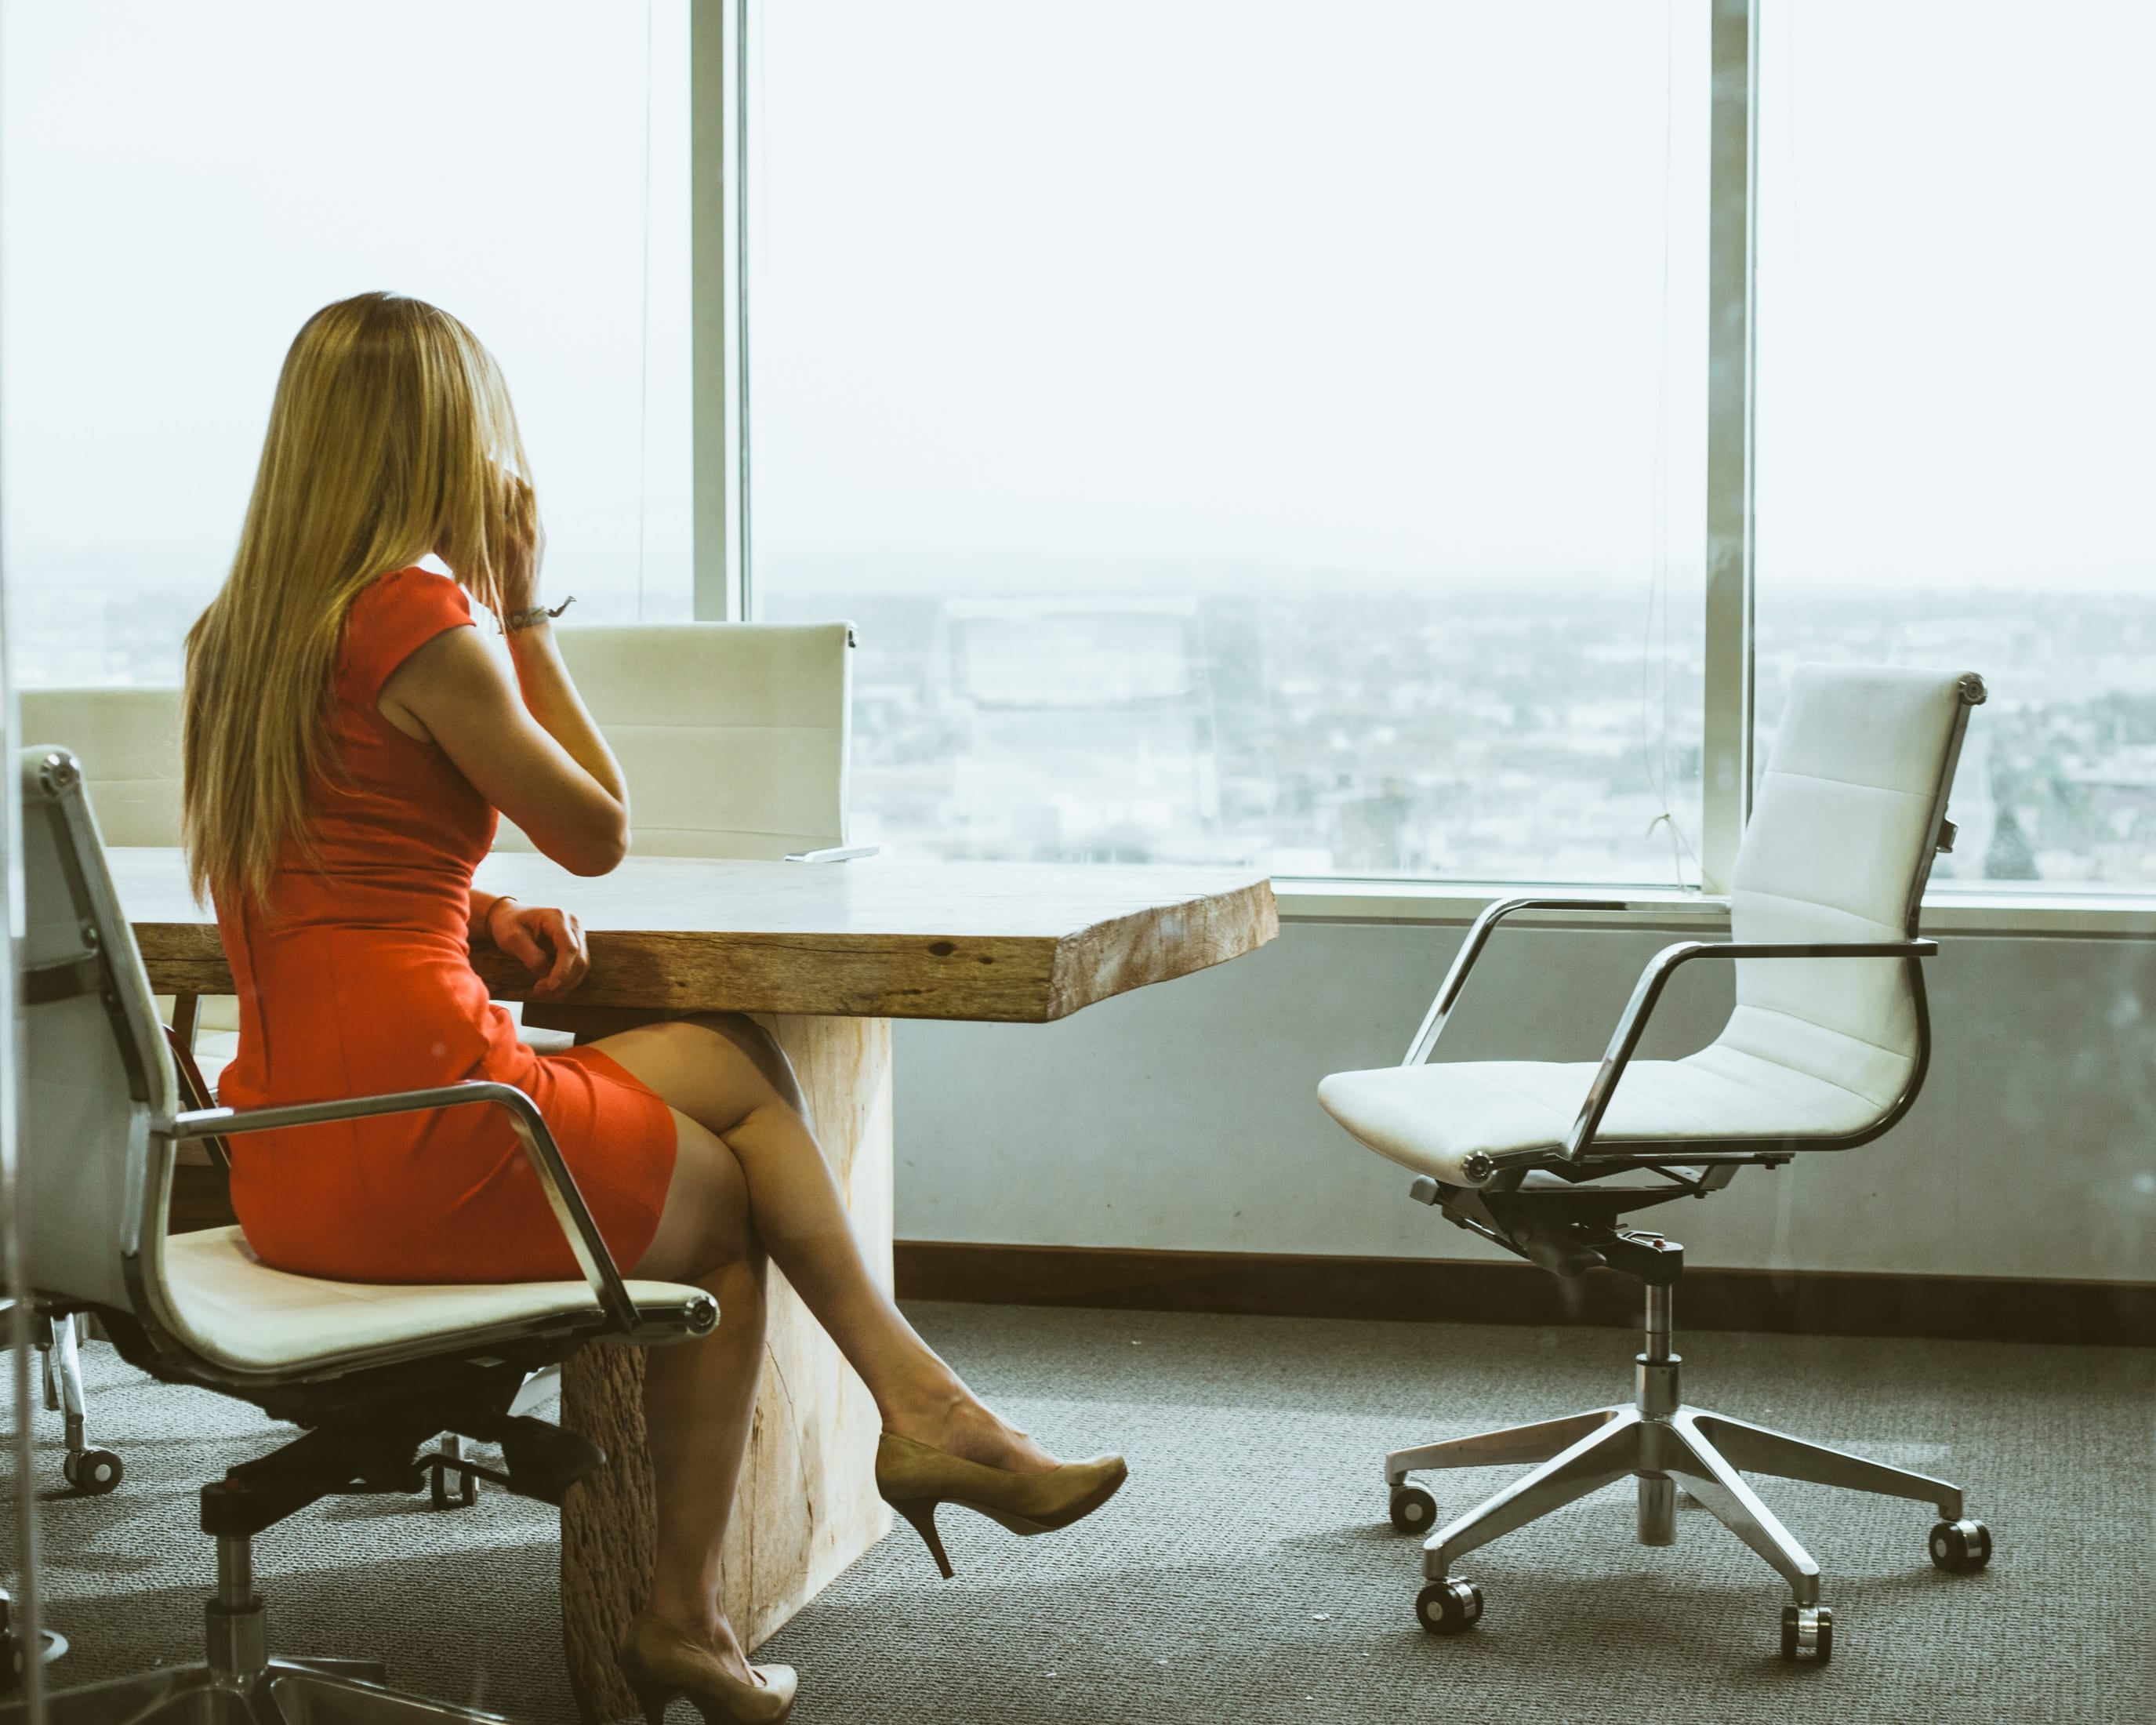 Woman in orange dress talking through mobile phone while sitting on swivel chair; image by Dane Deaner, via Unsplash.com.